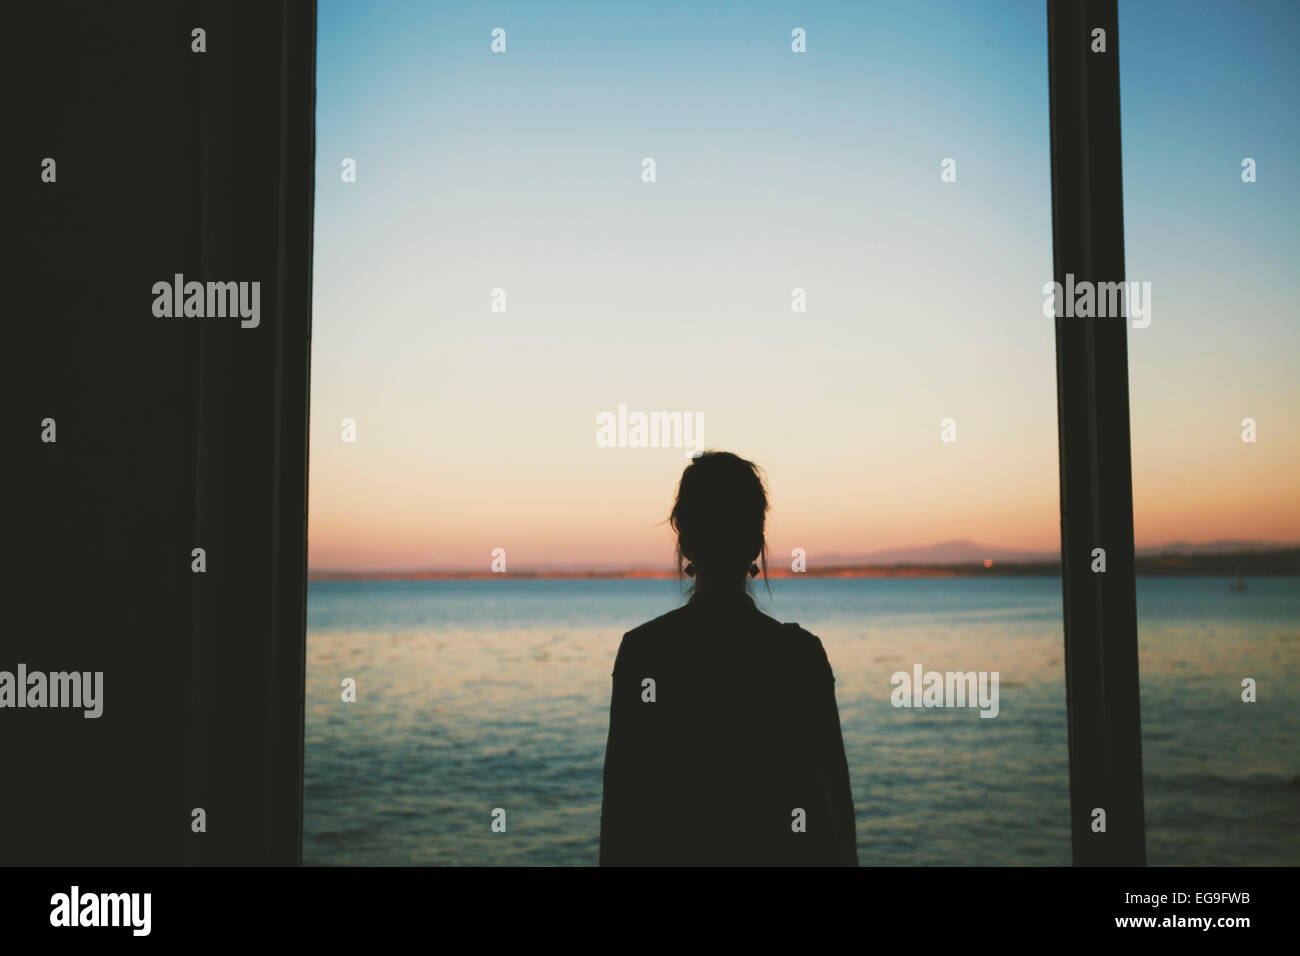 Woman looking at sea through window - Stock Image